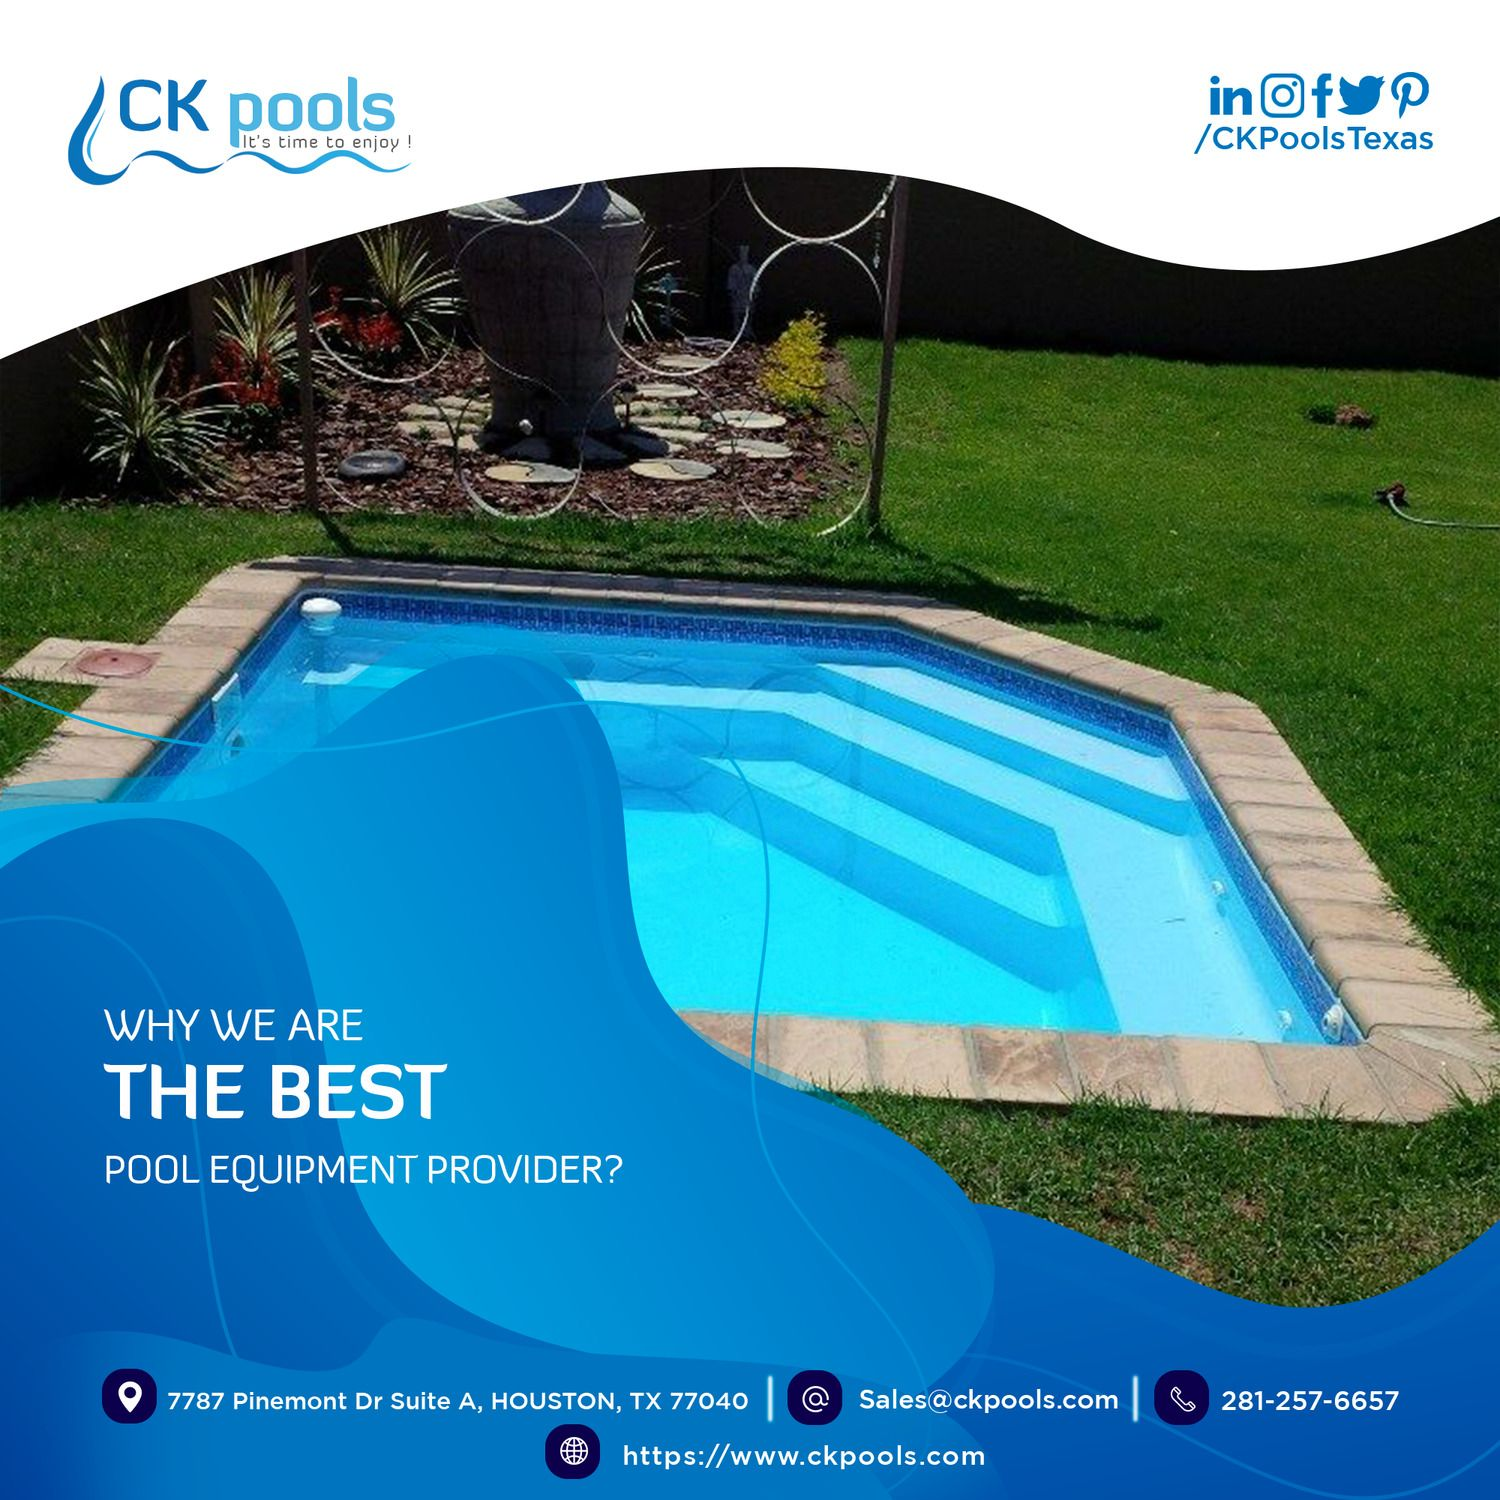 Why We Are The Best Pool Equipment Provider We Partner With The Only Pool Equipment Manufacturer Who Provides A Warranty On Its In 2020 Pool Cool Pools Pool Equipment